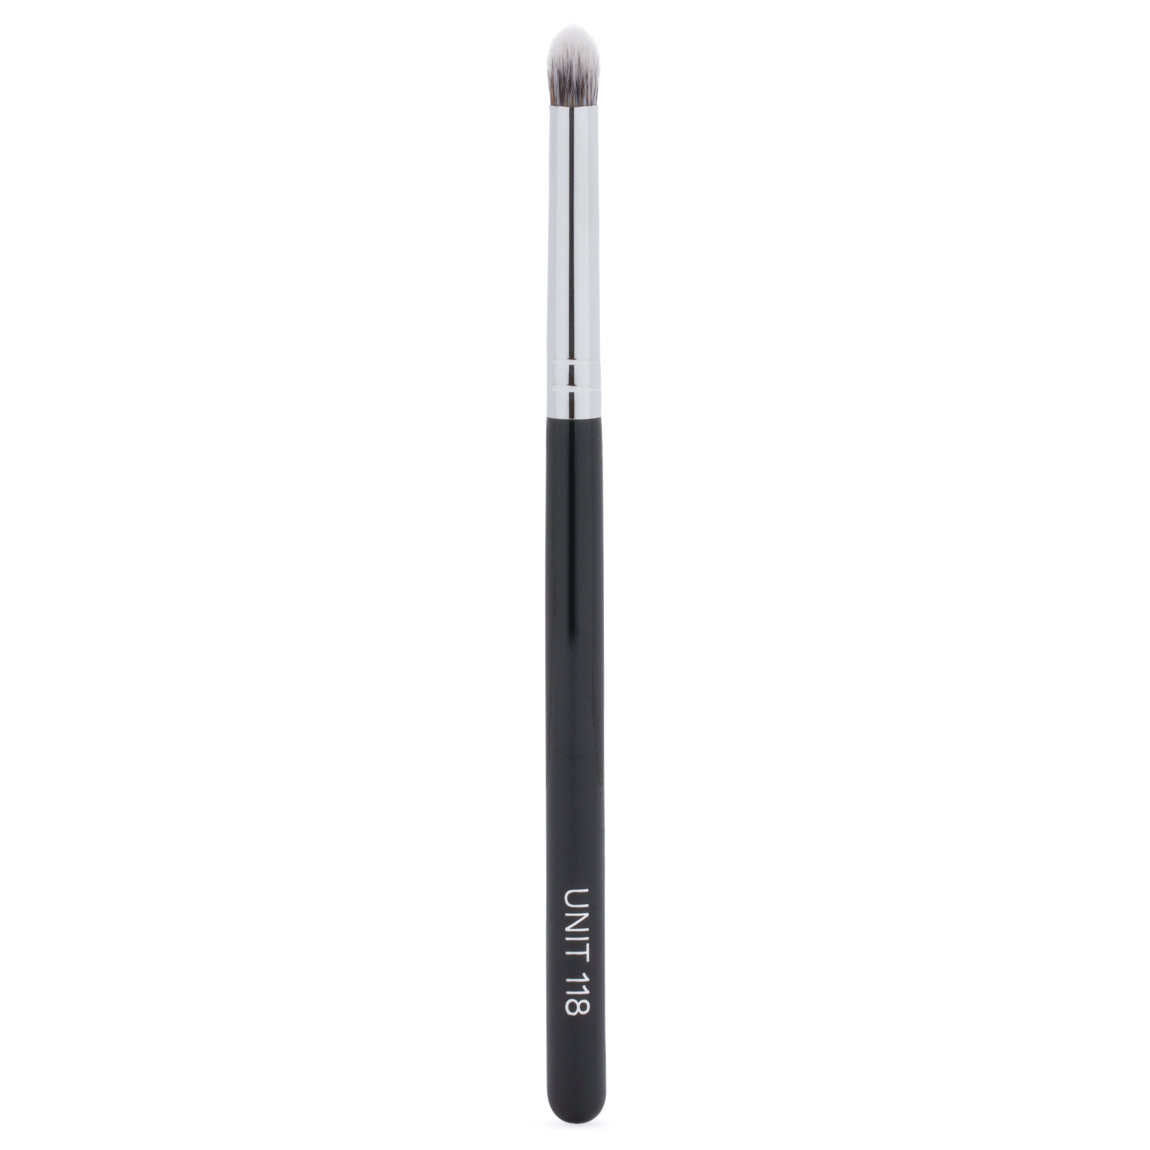 UNIT 118 Eye Brush